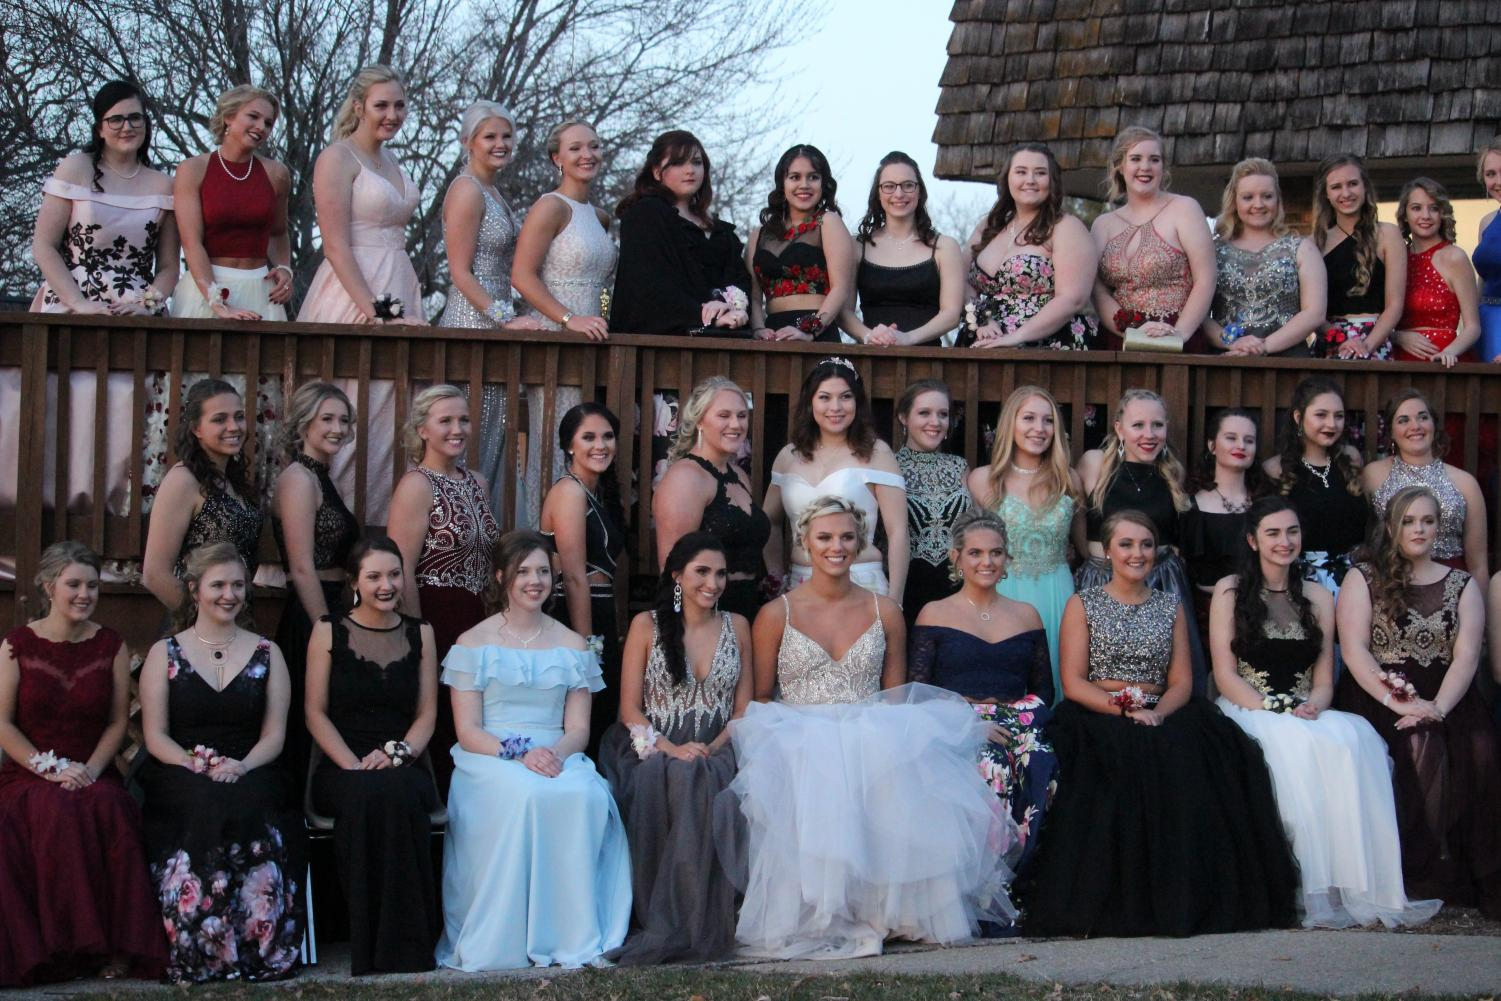 LINE UP - 2018 graduate girls pose for the traditional senior picture. Shown are some examples of dress styles from last year.